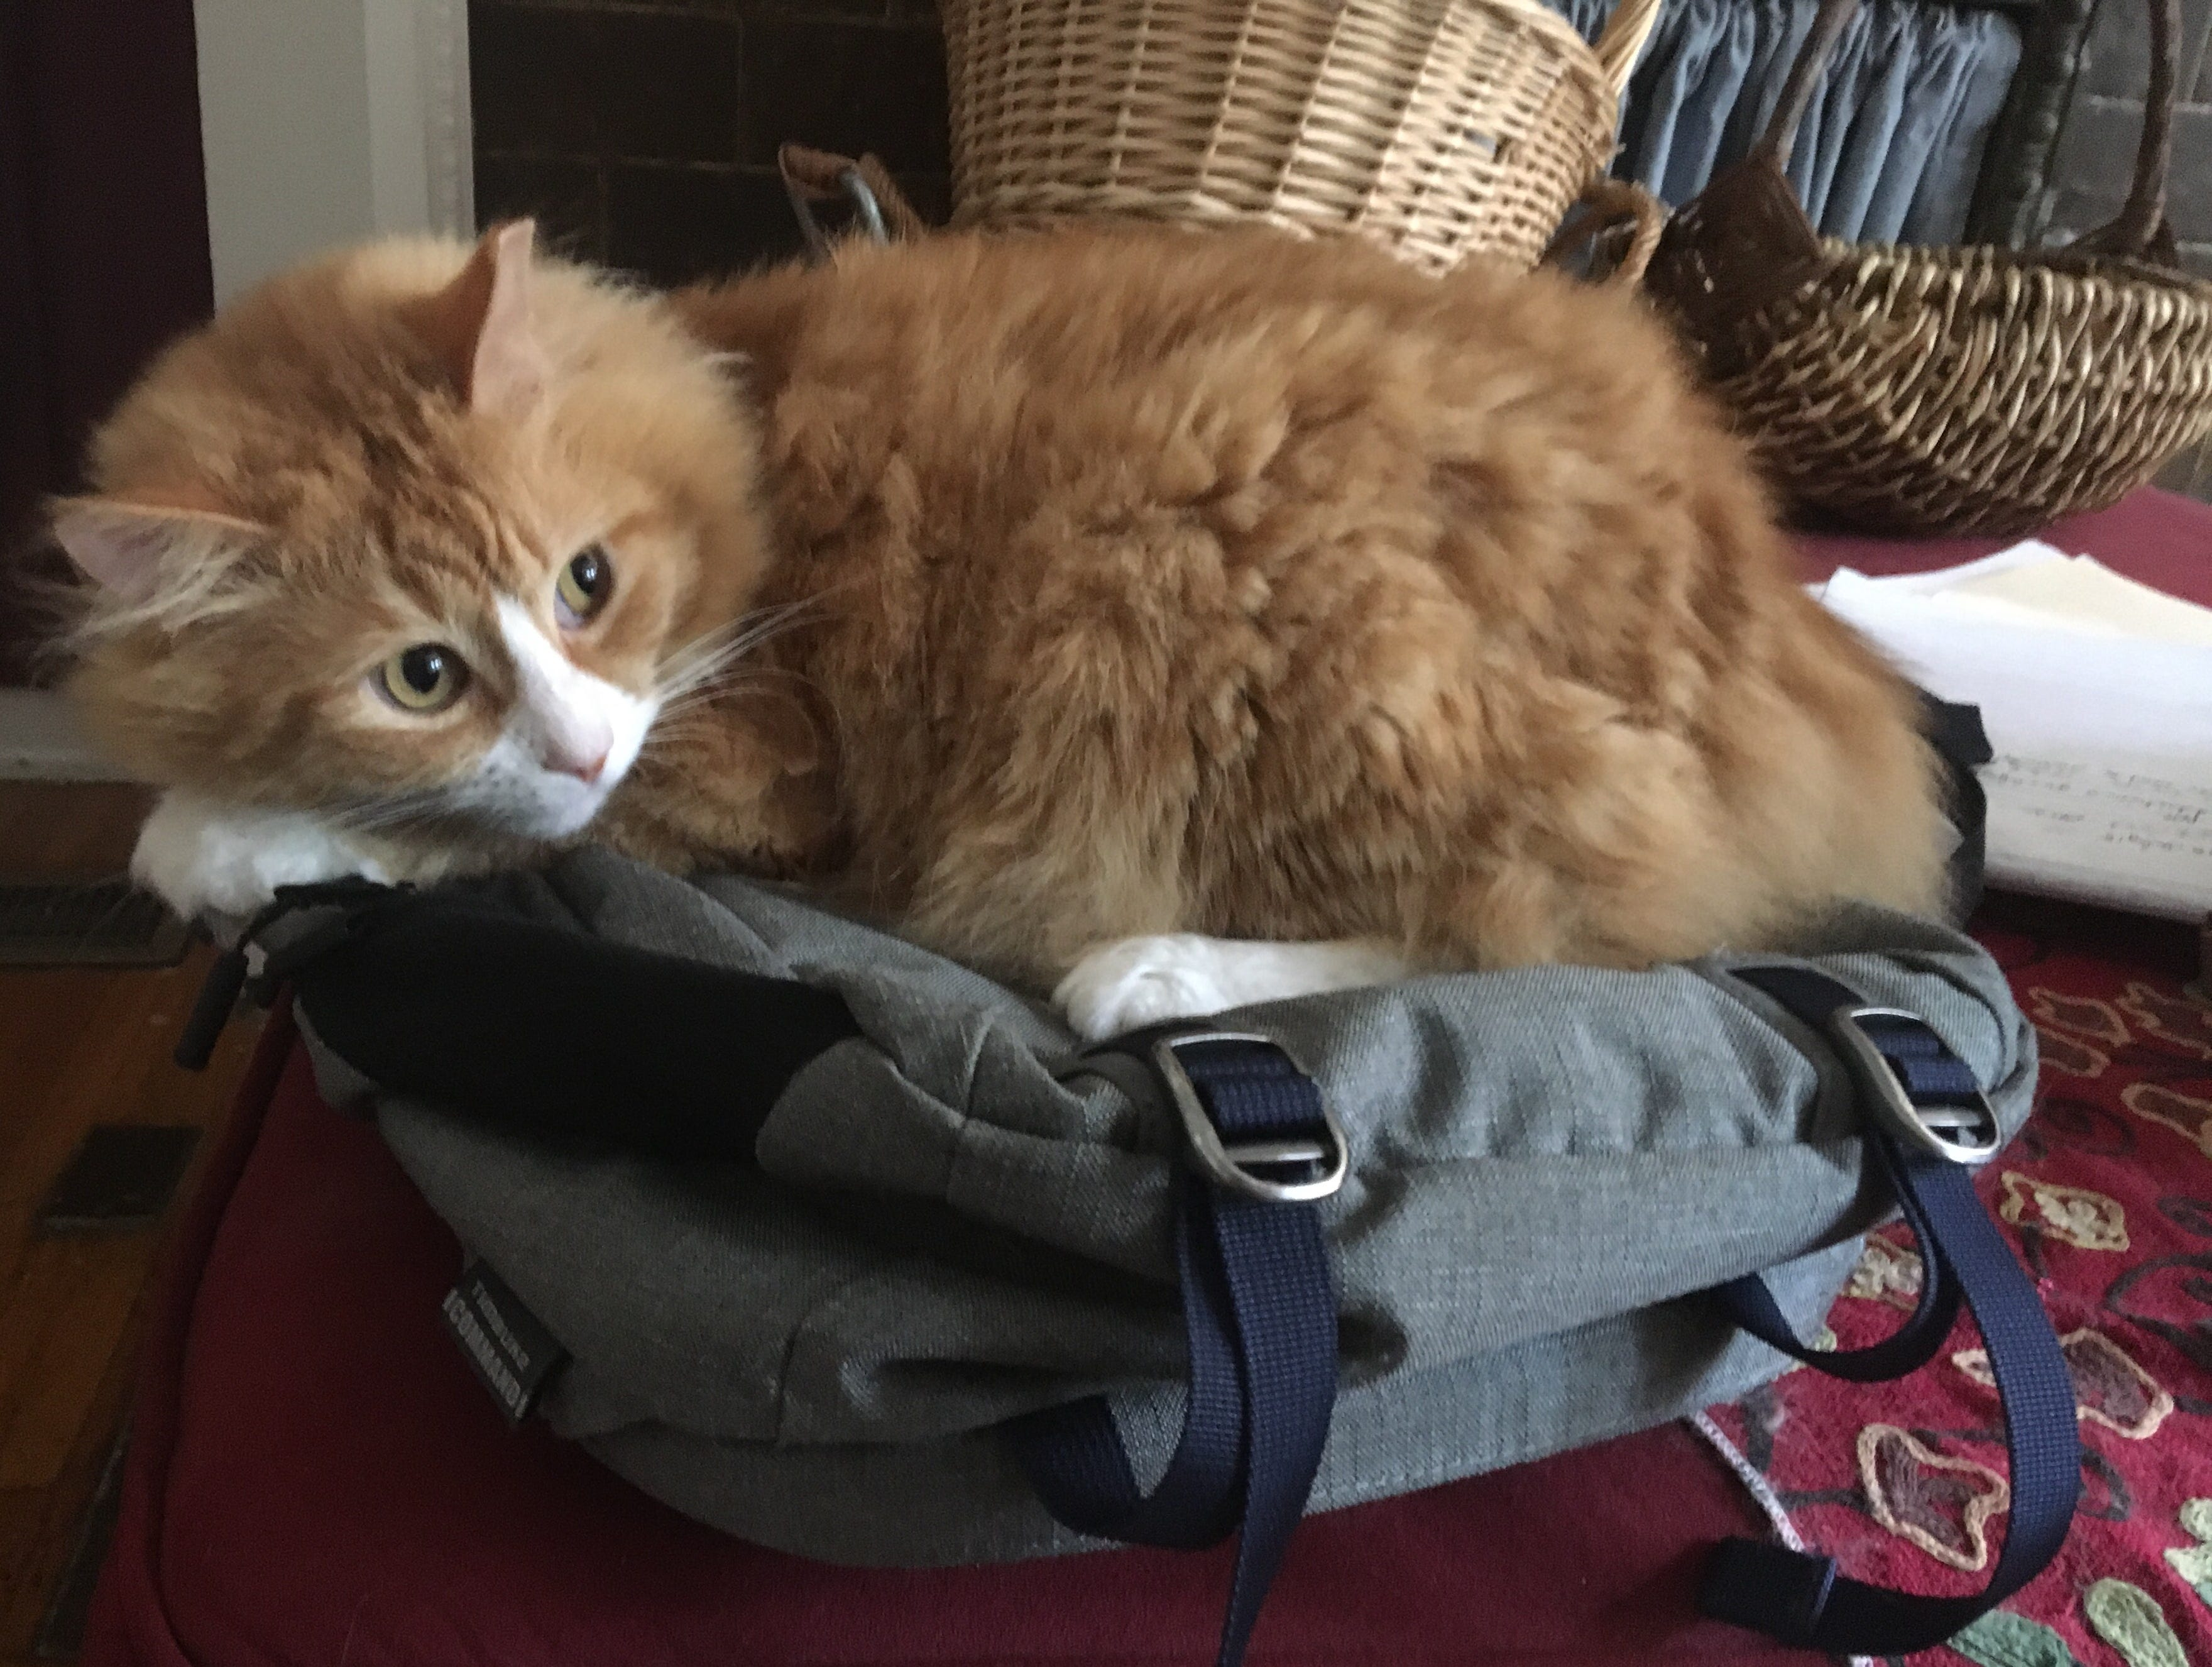 George, slavishly served by Anne Saker, is the chief correspondent in Walnut Hills for the global news organization Caturday Press International. His main job is to gently warm the laptop backpack.